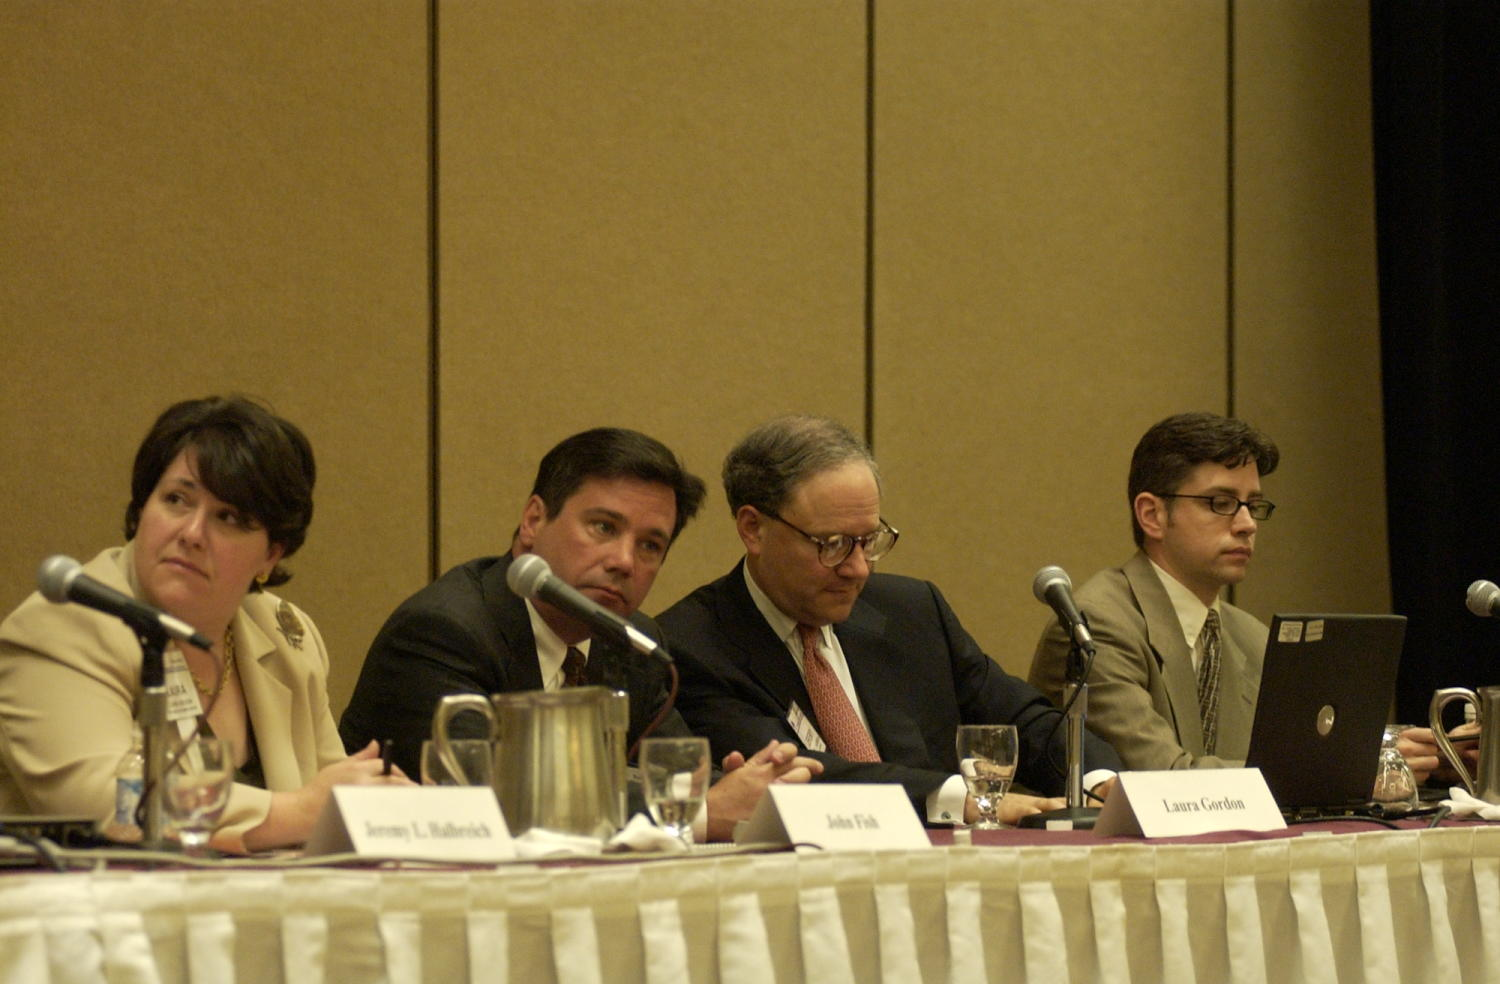 [Laura Gordon, John Fish, Jeremy L. Halbreich and Jim Lenahan], Photograph of (L-R) Laura Gordon, John Fish, Jeremy L. Halbreich, and Jim Lenahan, guest speakers attending the 2004 Texas Daily News Association annual conference held in Corpus Christi.,